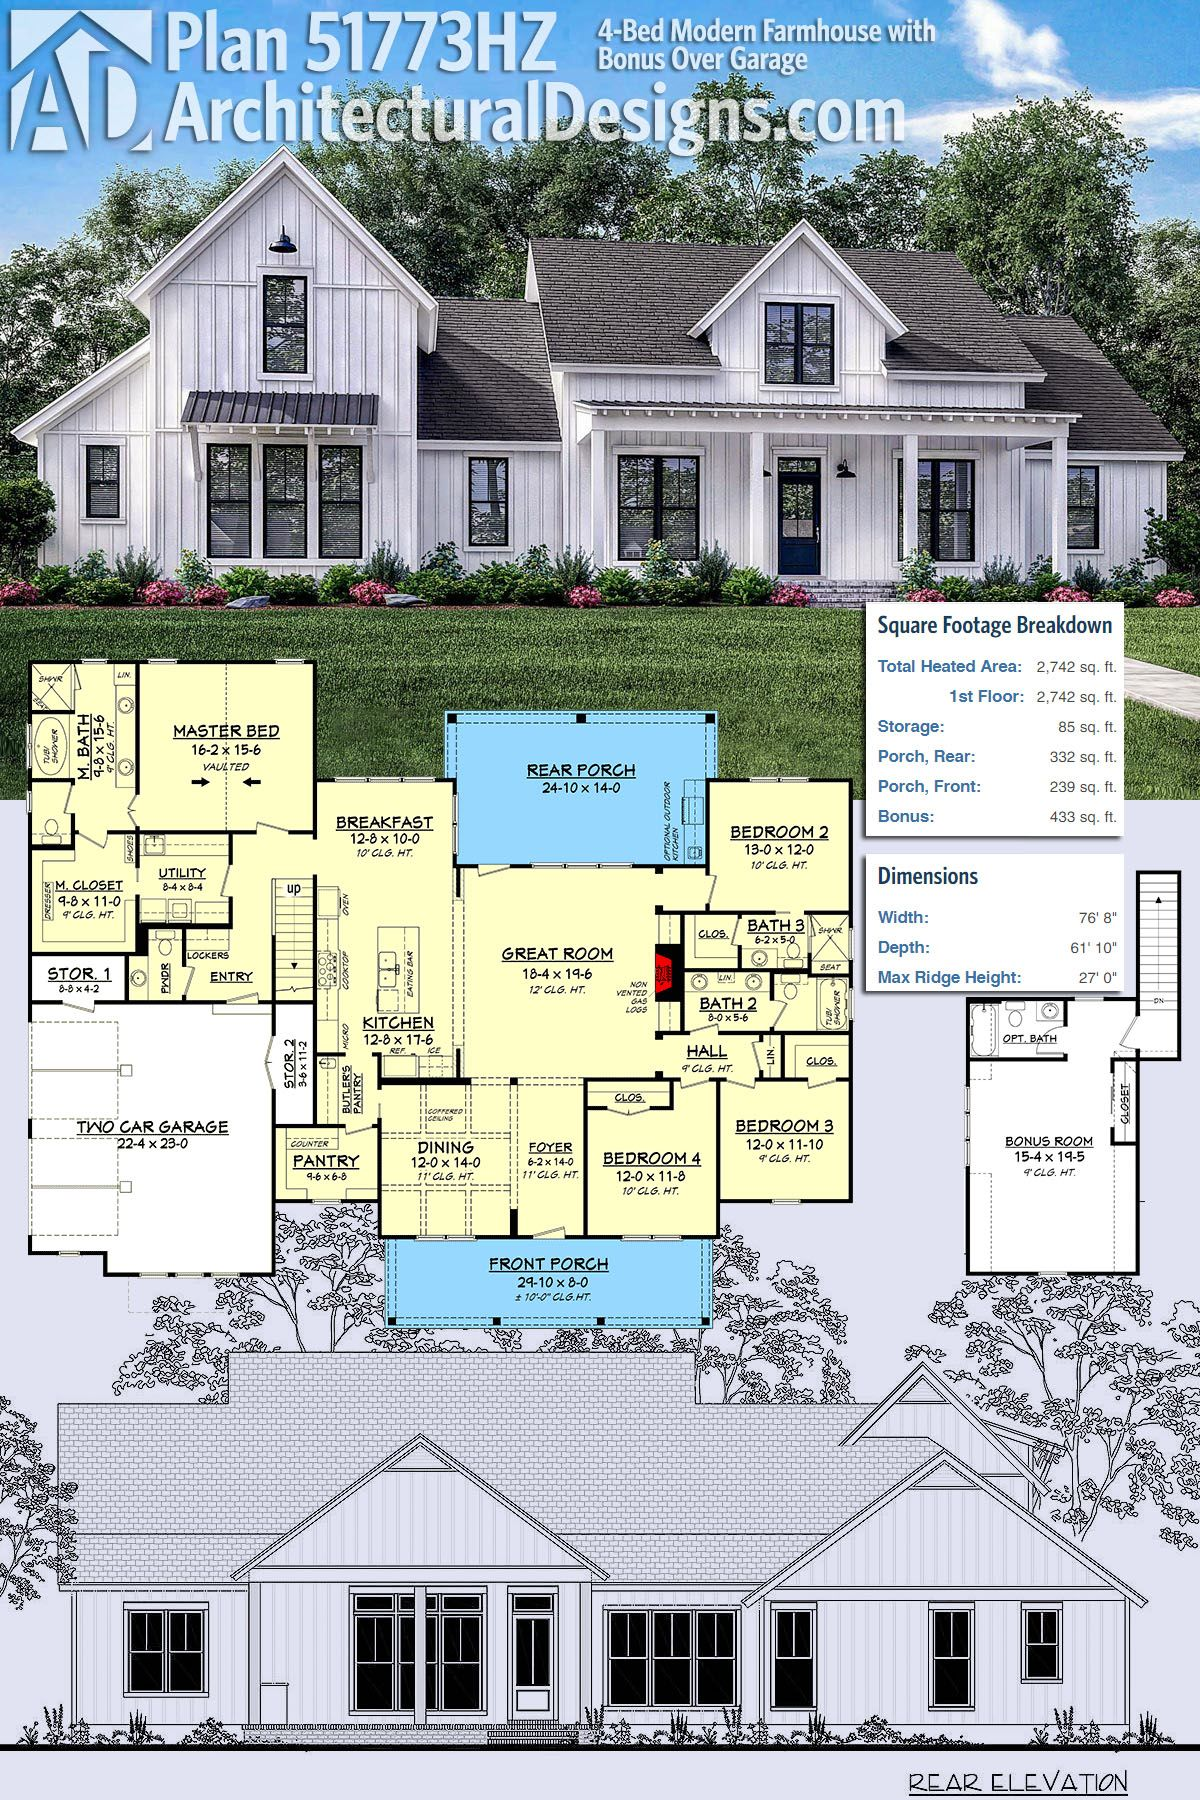 plan 51773hz 4 bed modern farmhouse with bonus over garage